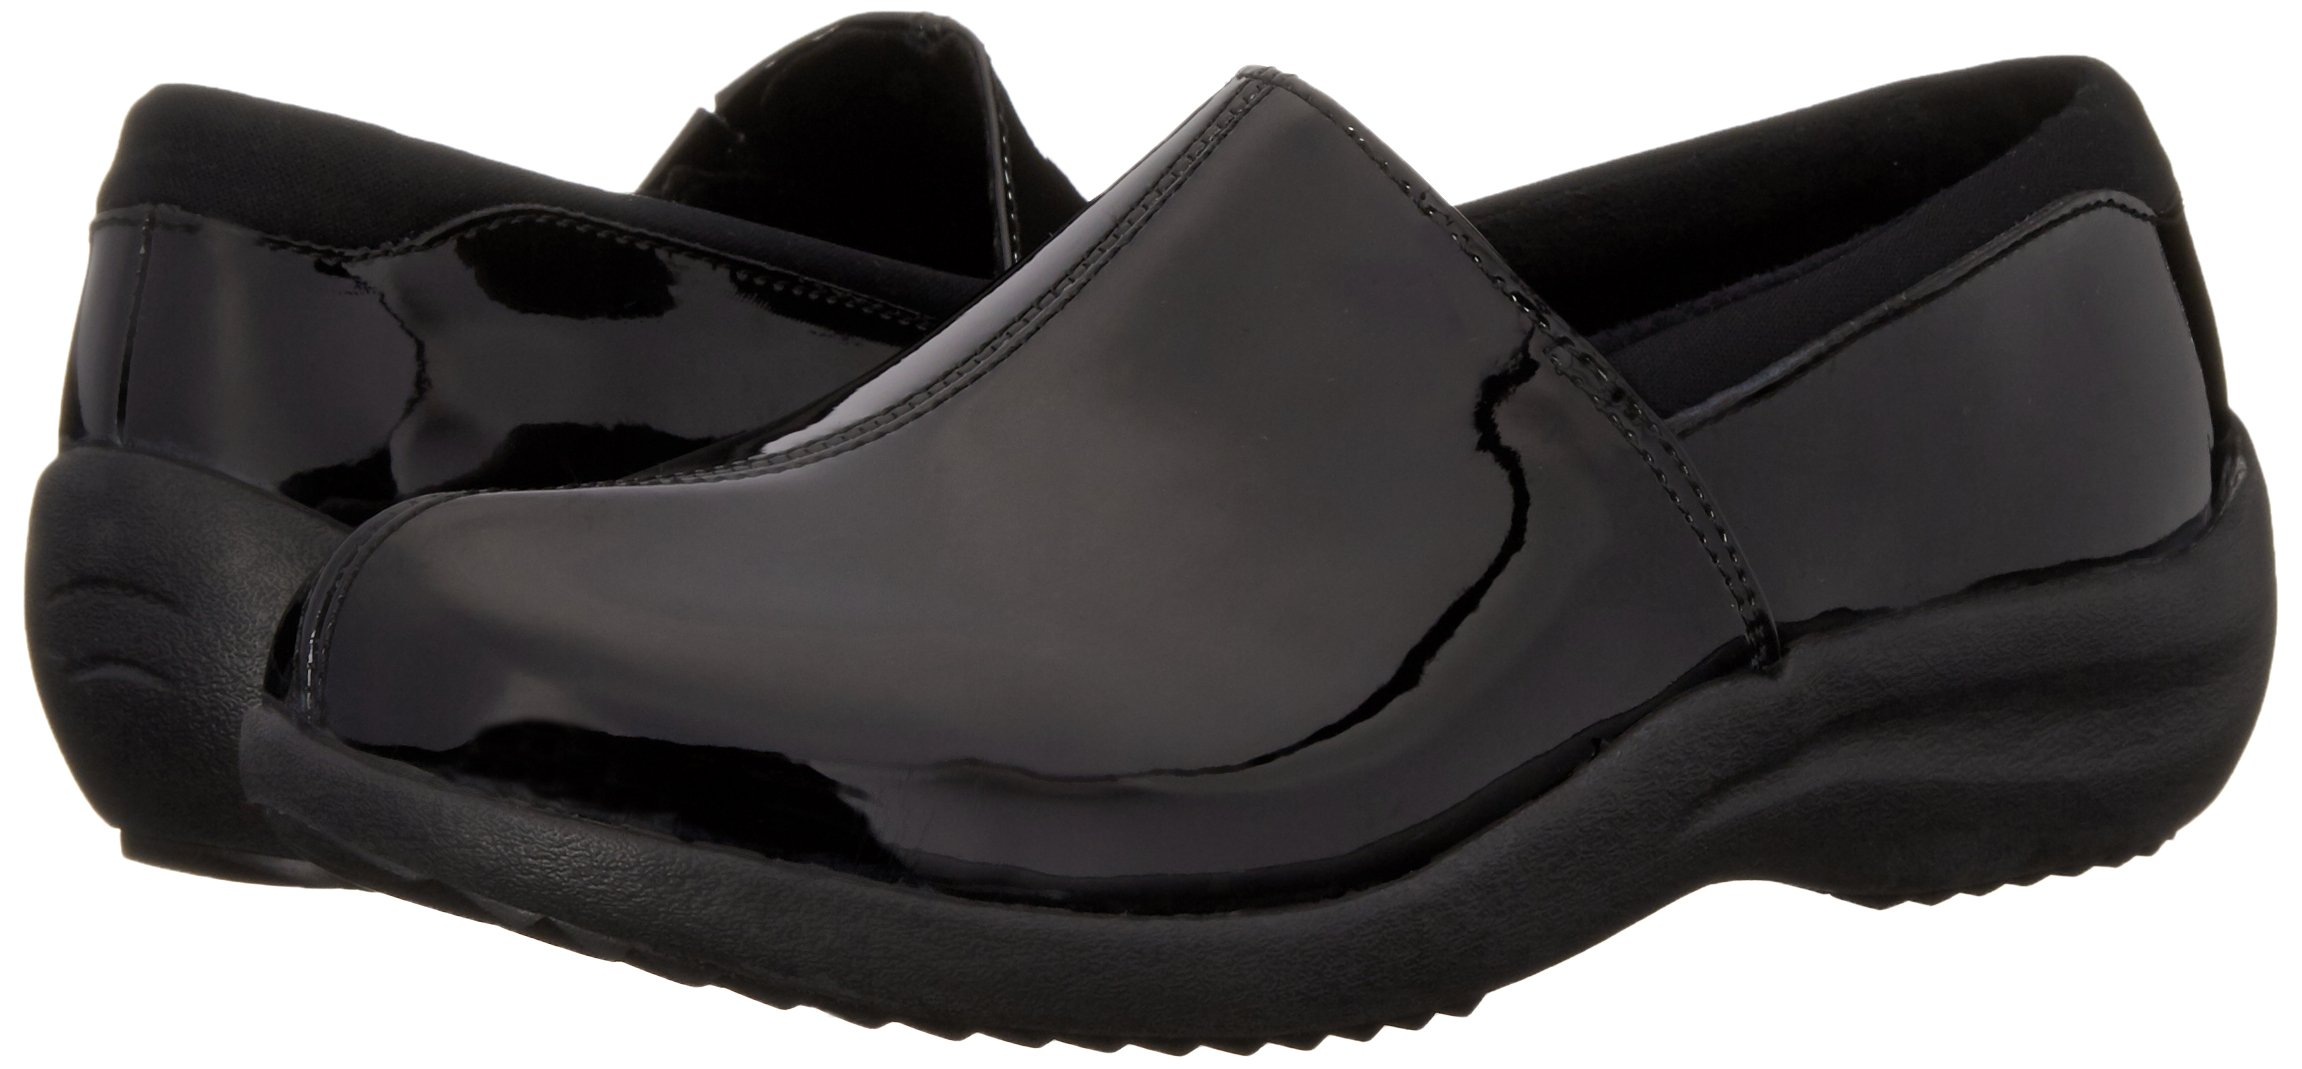 Skechers Women's Savor singular Mule, Black Patent Leather, 6 M US by Skechers (Image #6)